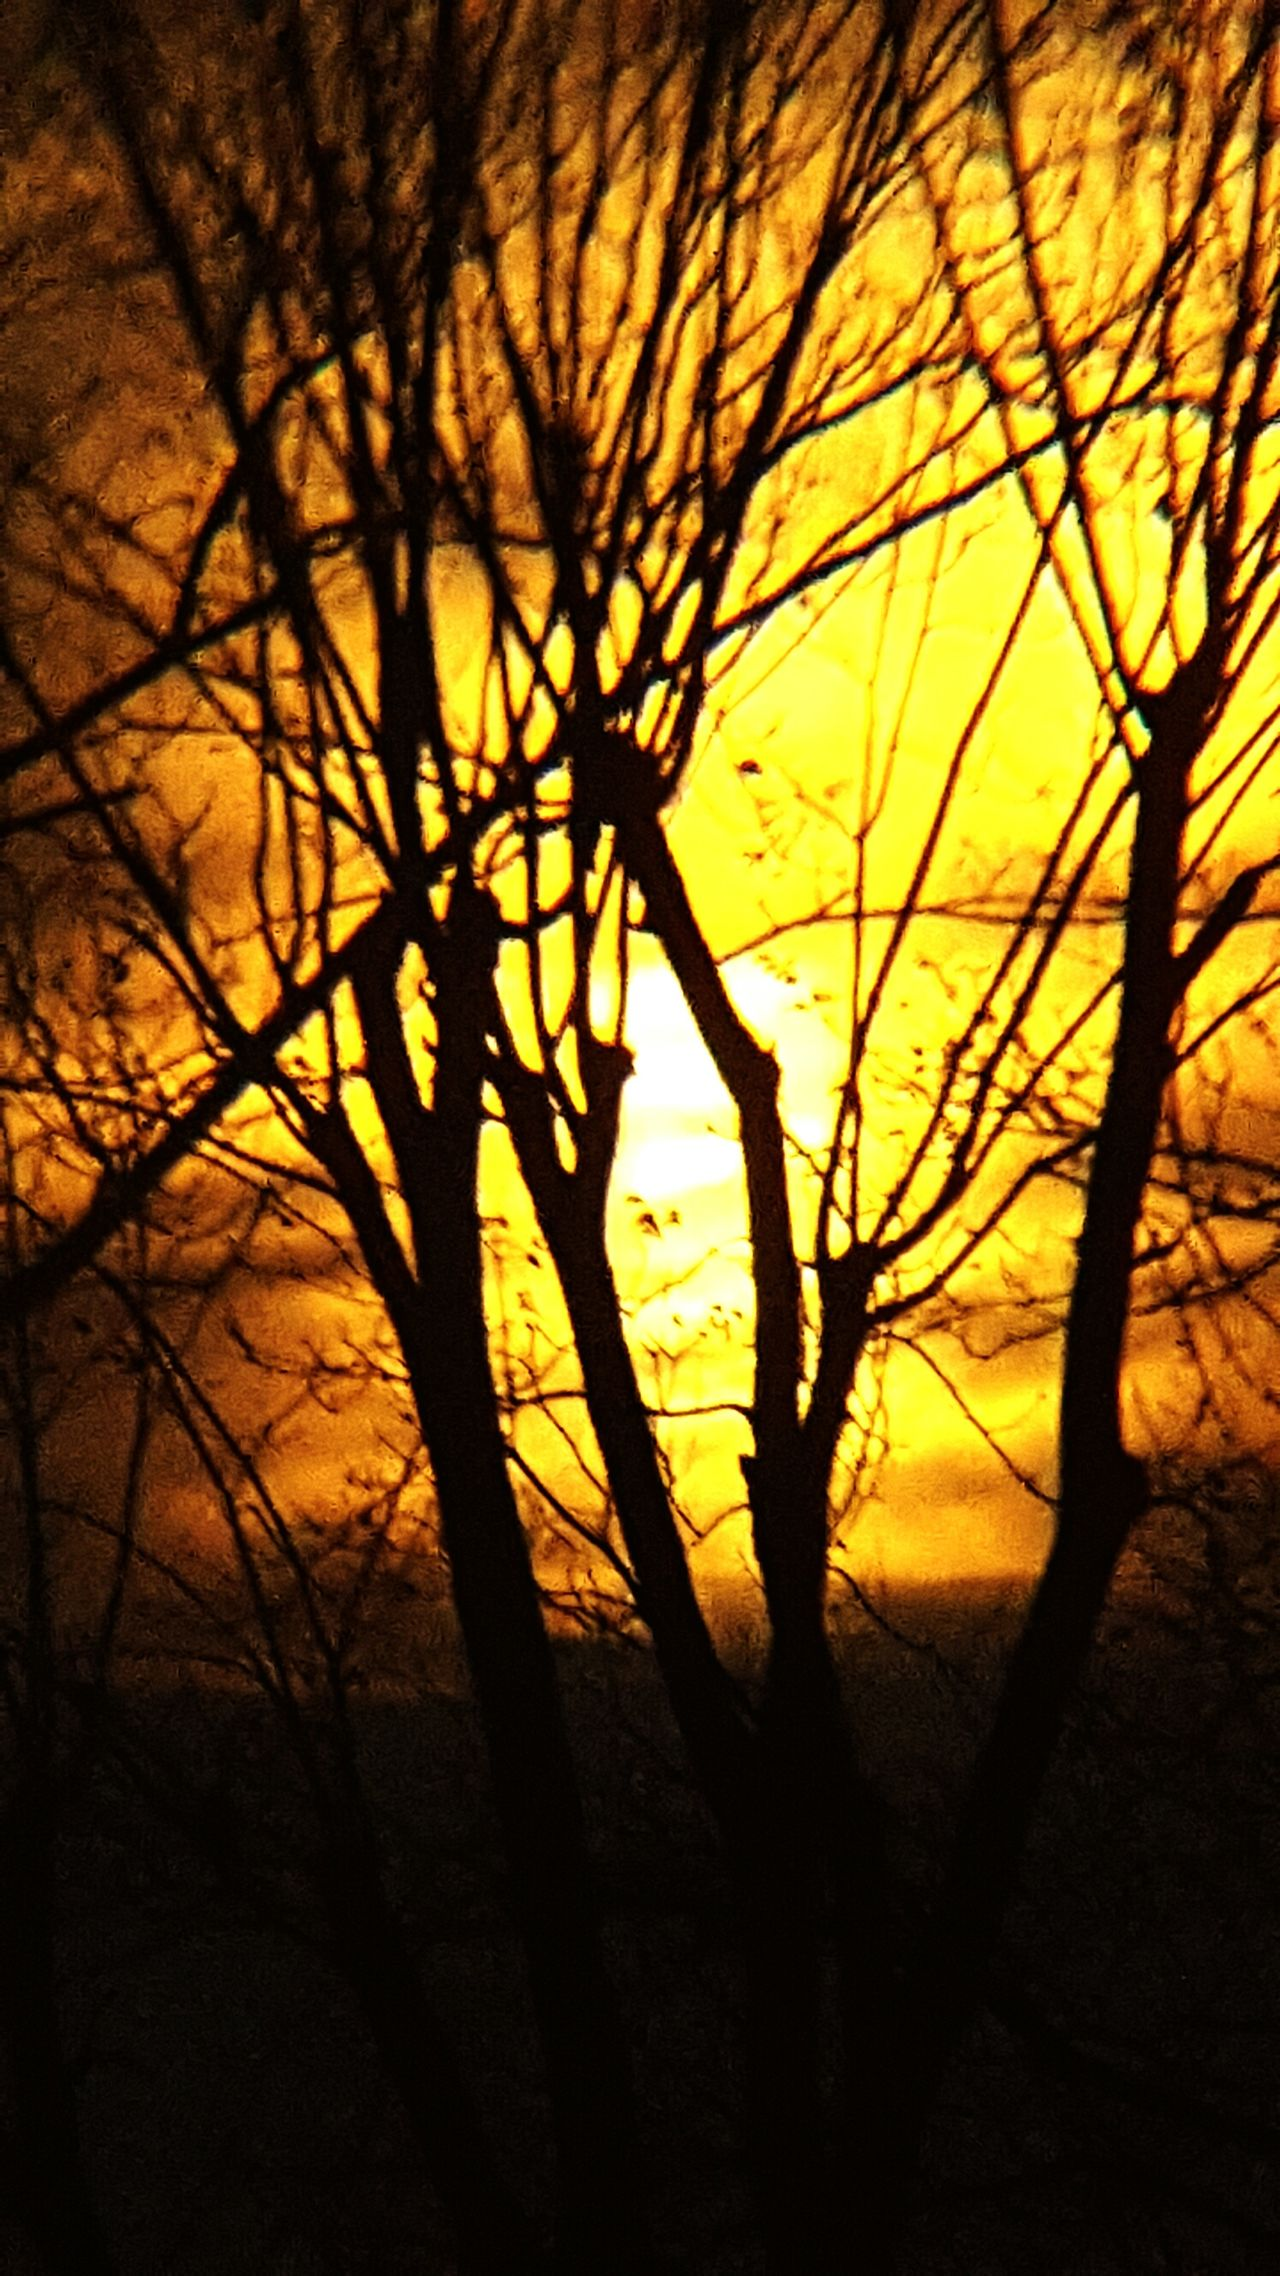 Sunset Silhouette Bare Tree Beauty In Nature Sunset Through The Trees Sunset Silhouette Sunset✨trees✨ Bare Branches Pecan Trees